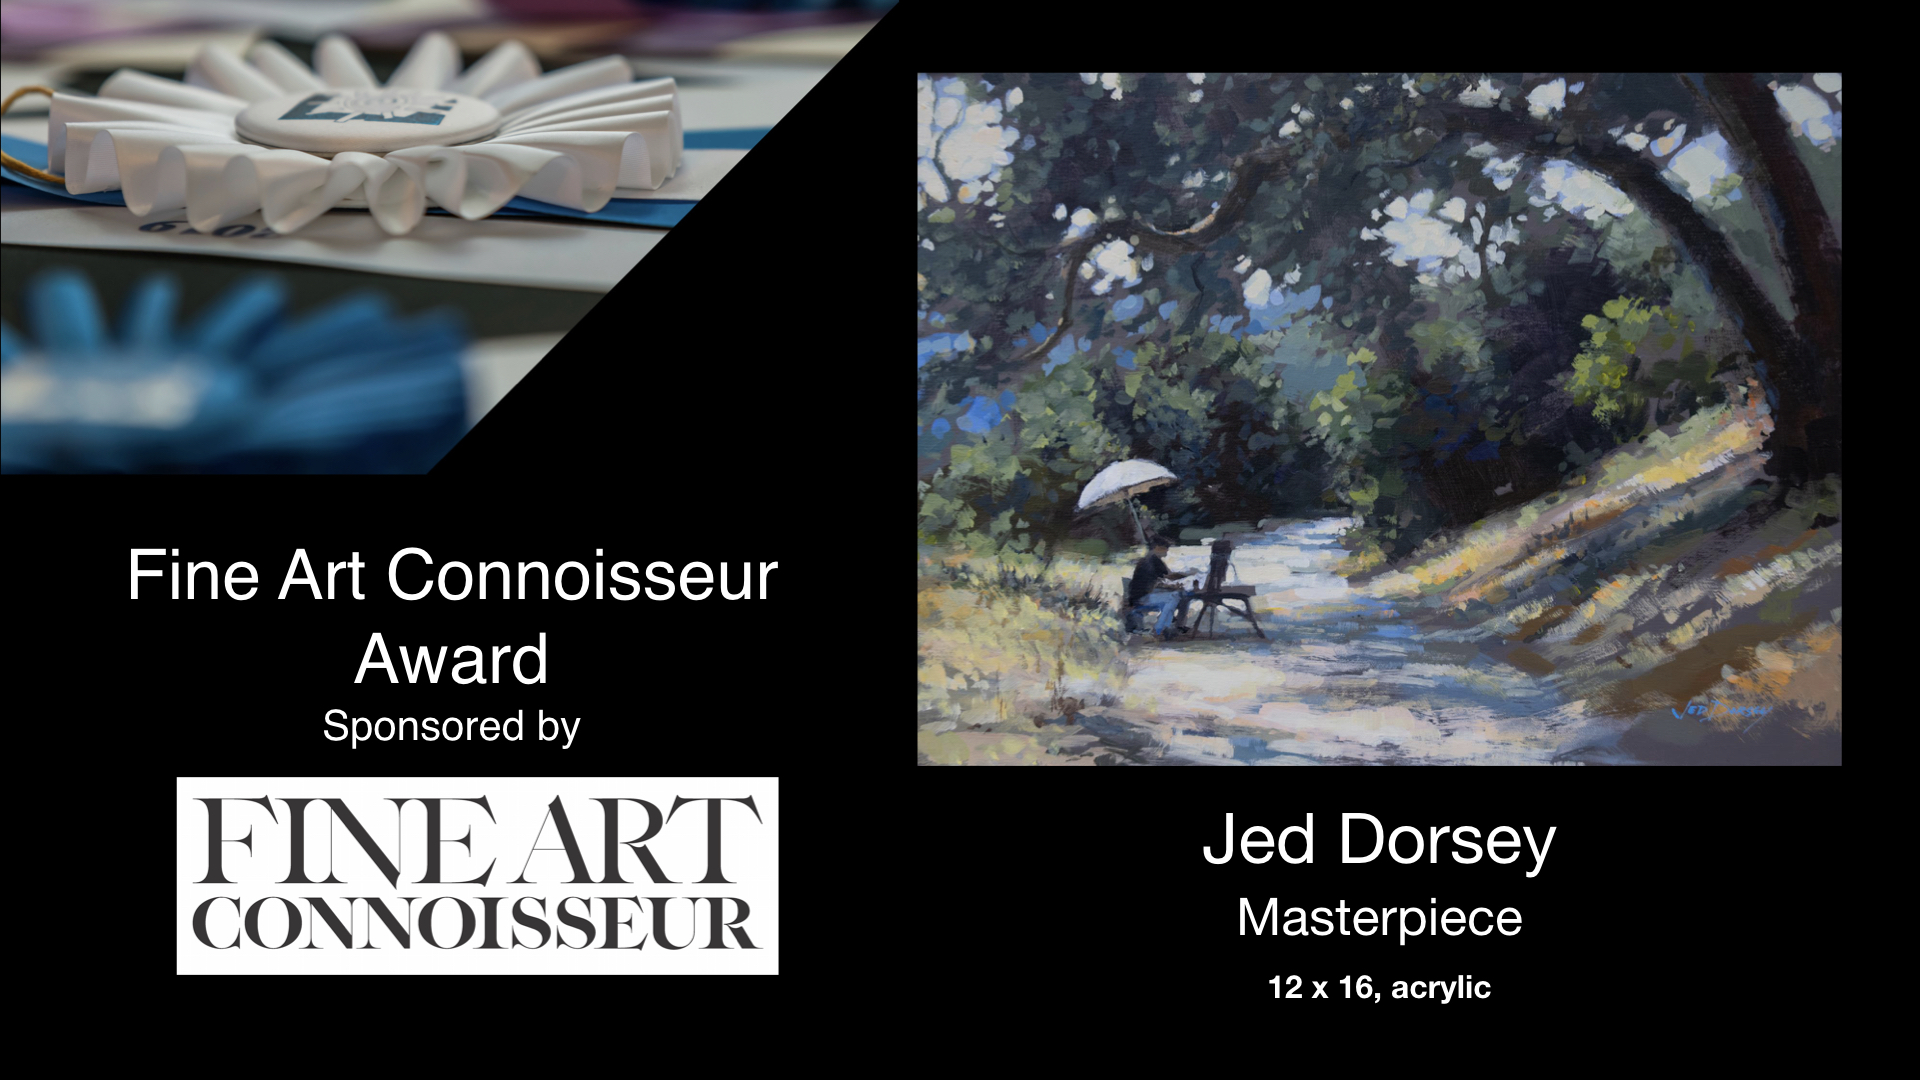 2020 Laguna Invitational Fine Art Connoisseur Award